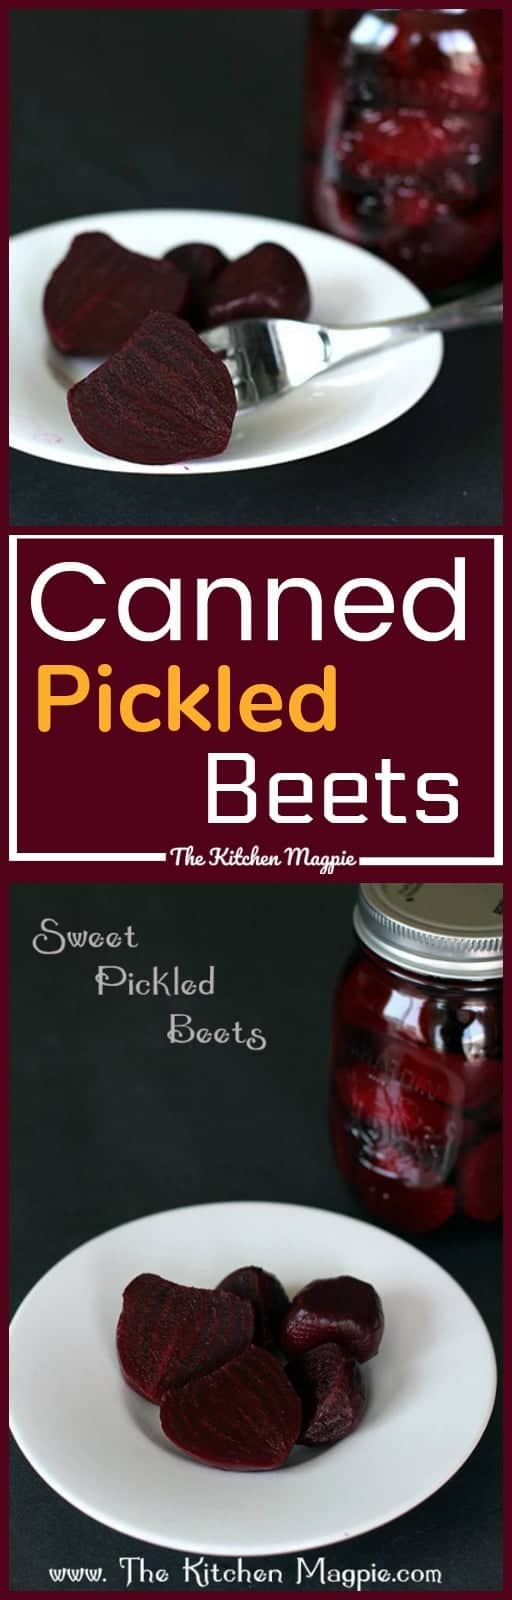 How to Make Canned Pickled Beets & Recipe! It's easier than you think to make these delicious pickled beets at home! Recipe from @kitchenmagpie. #Canning #pickles #preserving #beets #harvest #pickledbeets